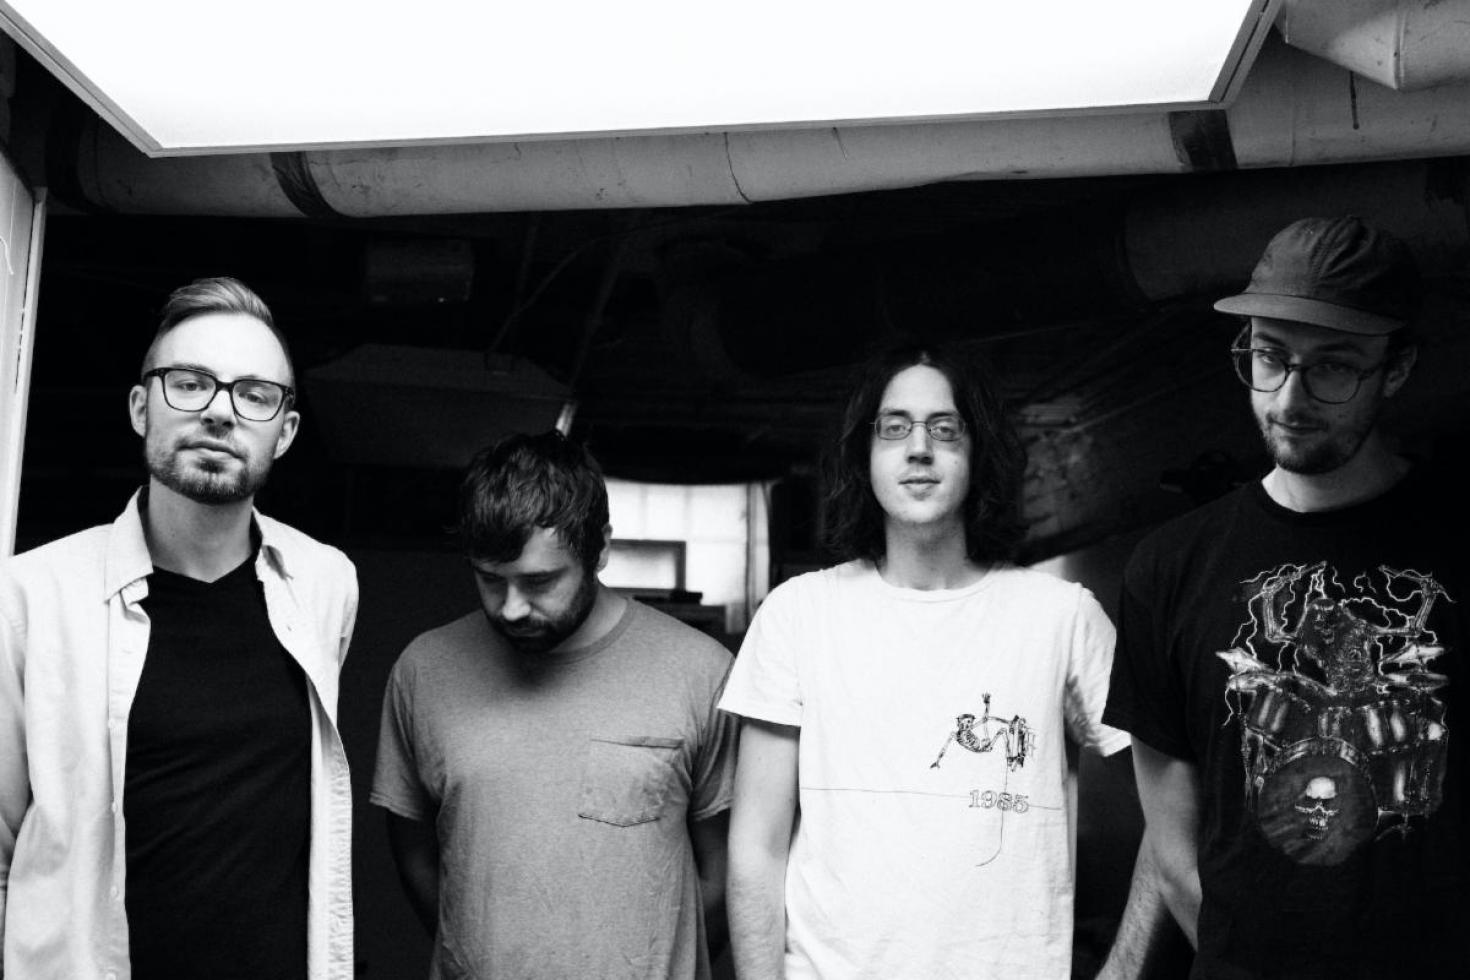 Cloud Nothings releases 'Turning On' reissue and shares new video